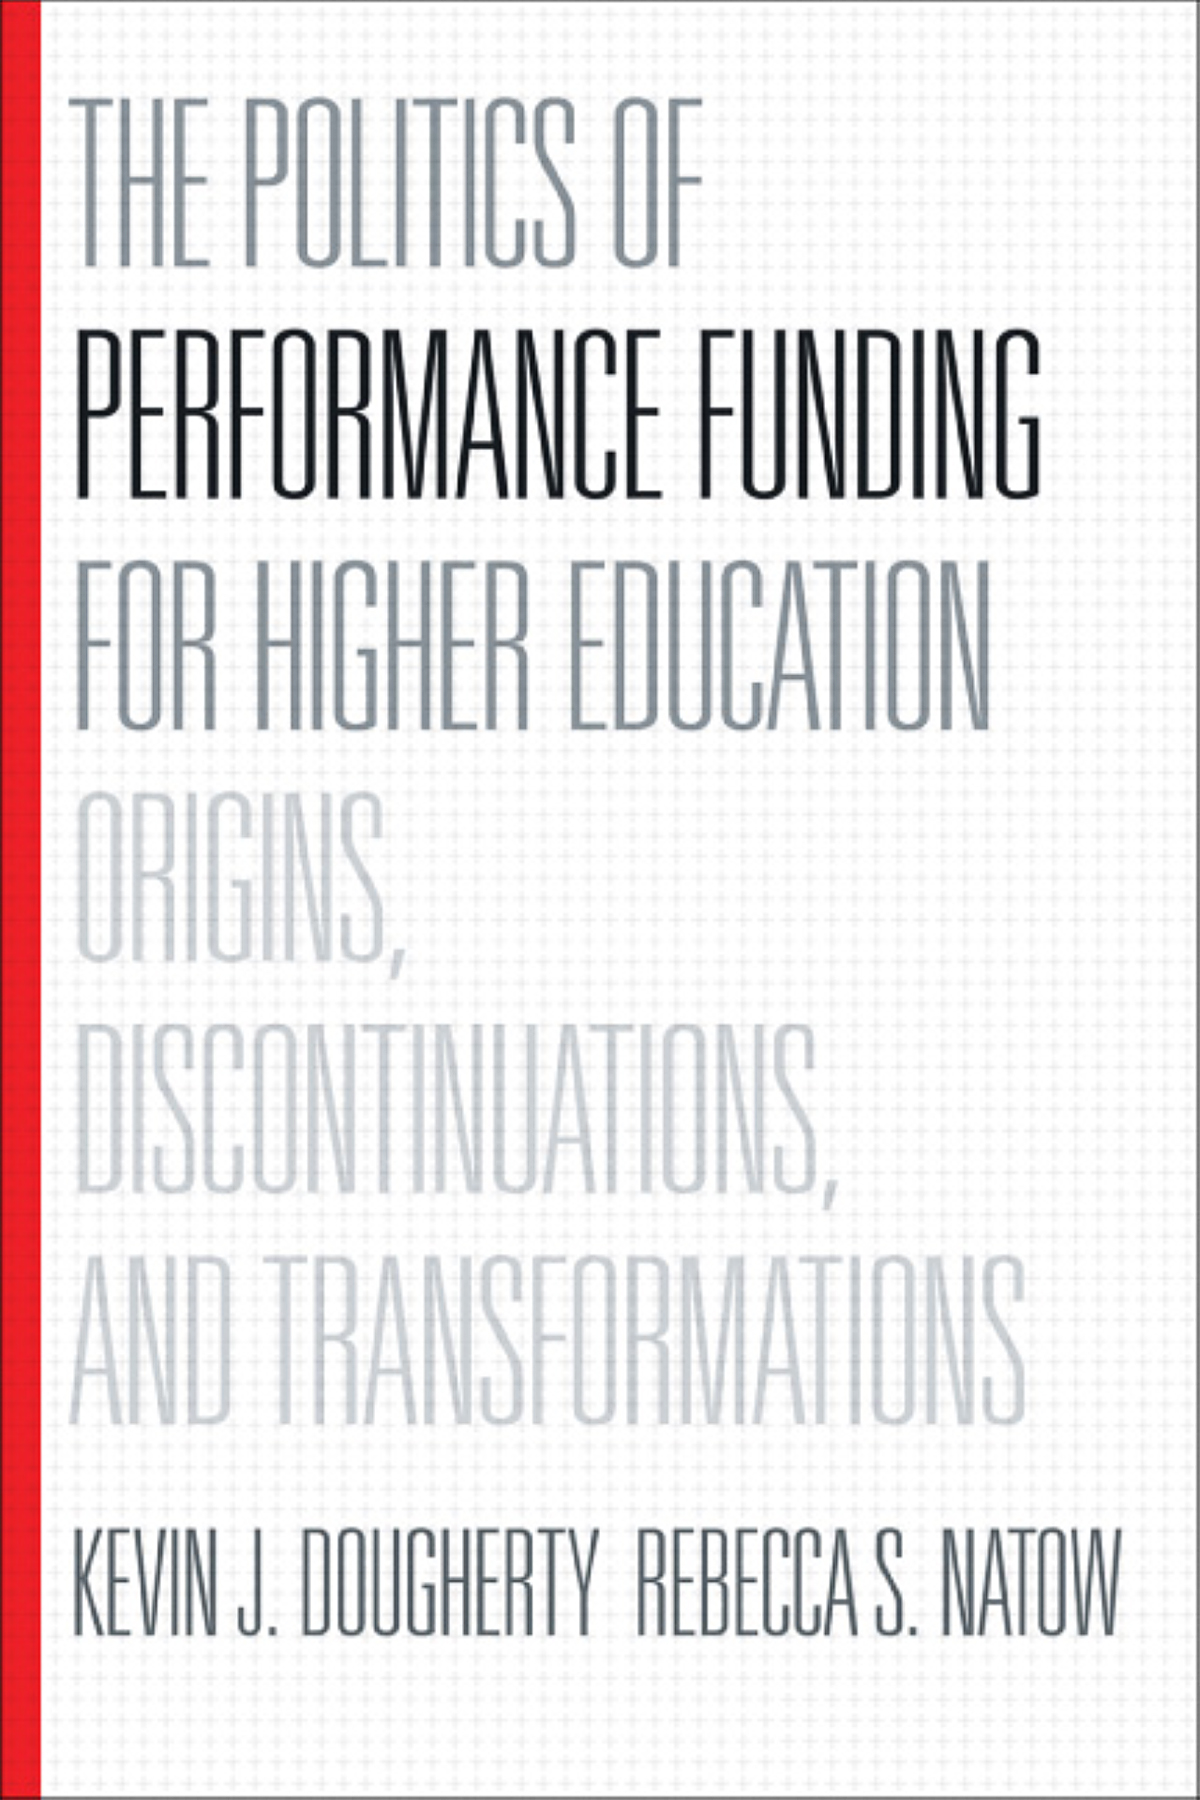 Cover of The Politics of Performance Funding for Higher Education